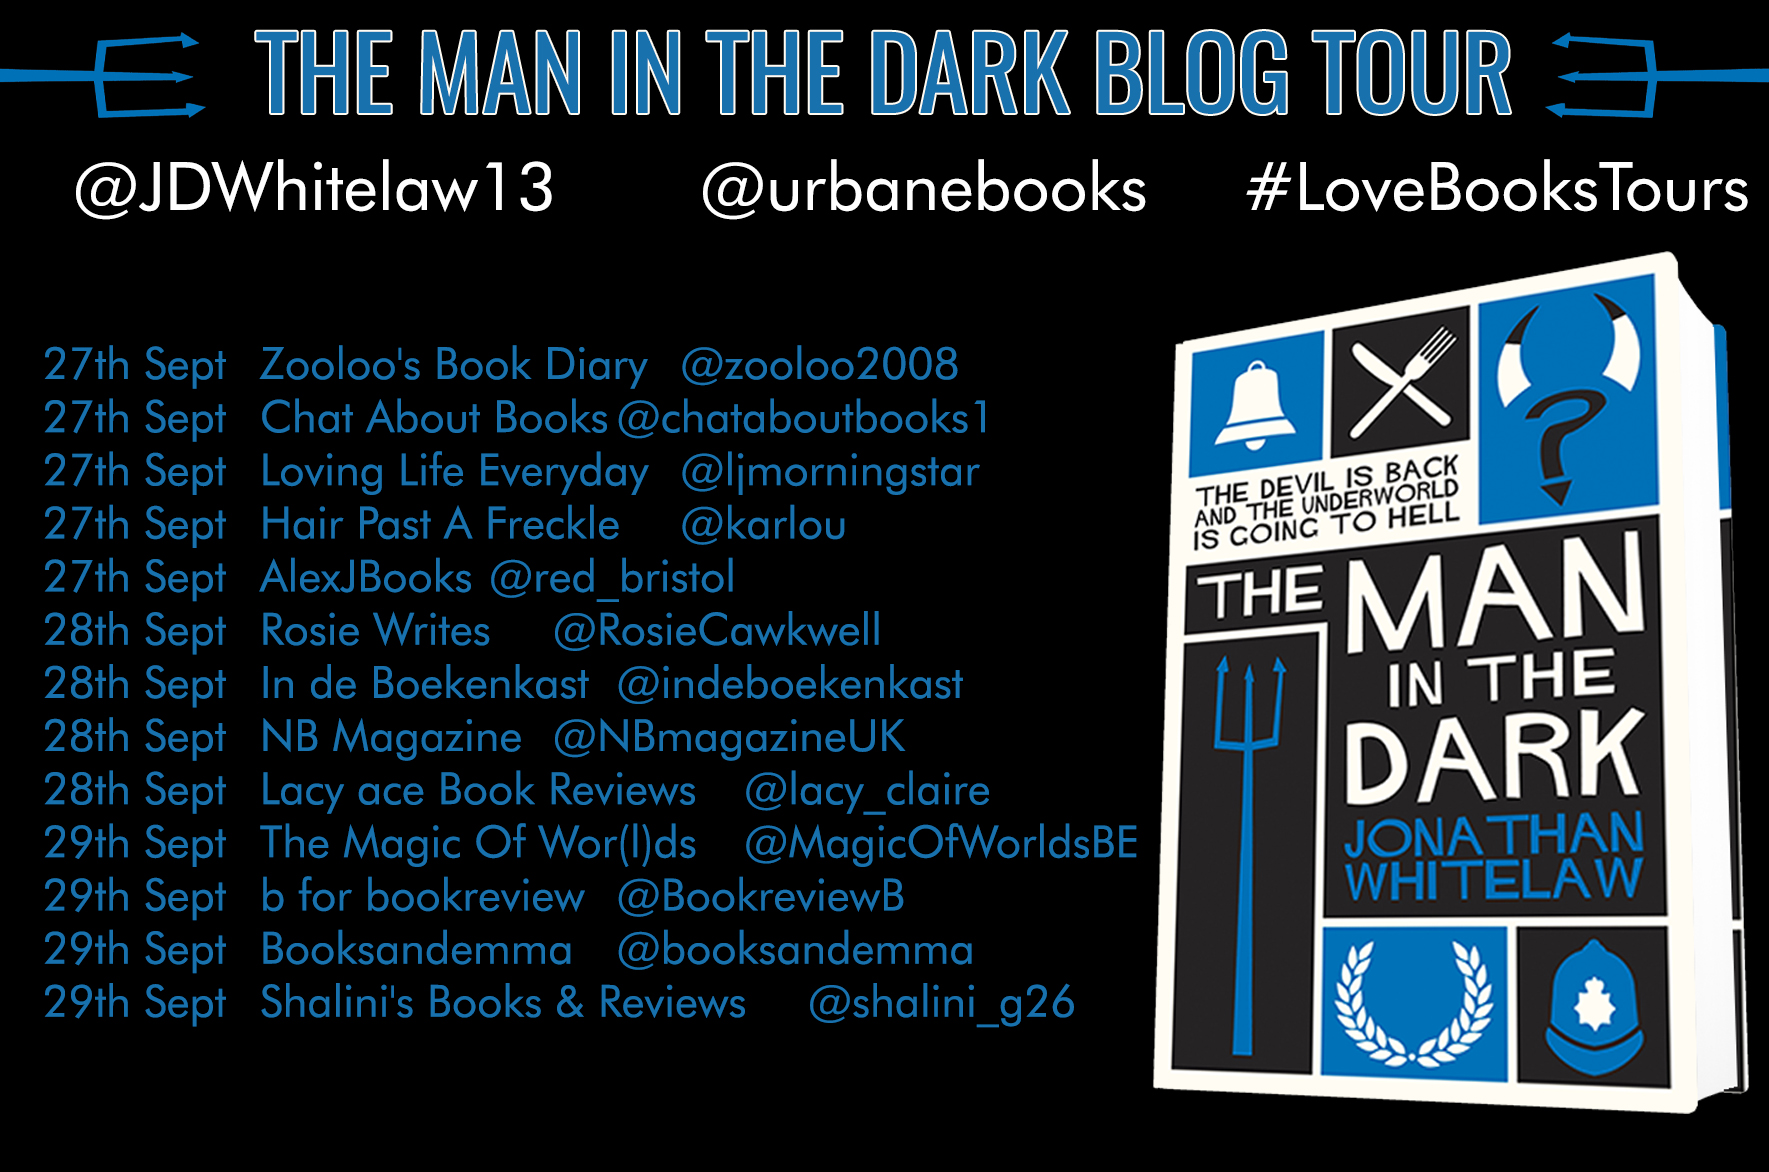 ***#BookReview of The Man in the Dark by Jonathan Whitelaw @urbanebooks  @JDWhitelaw13 #lovebookstour